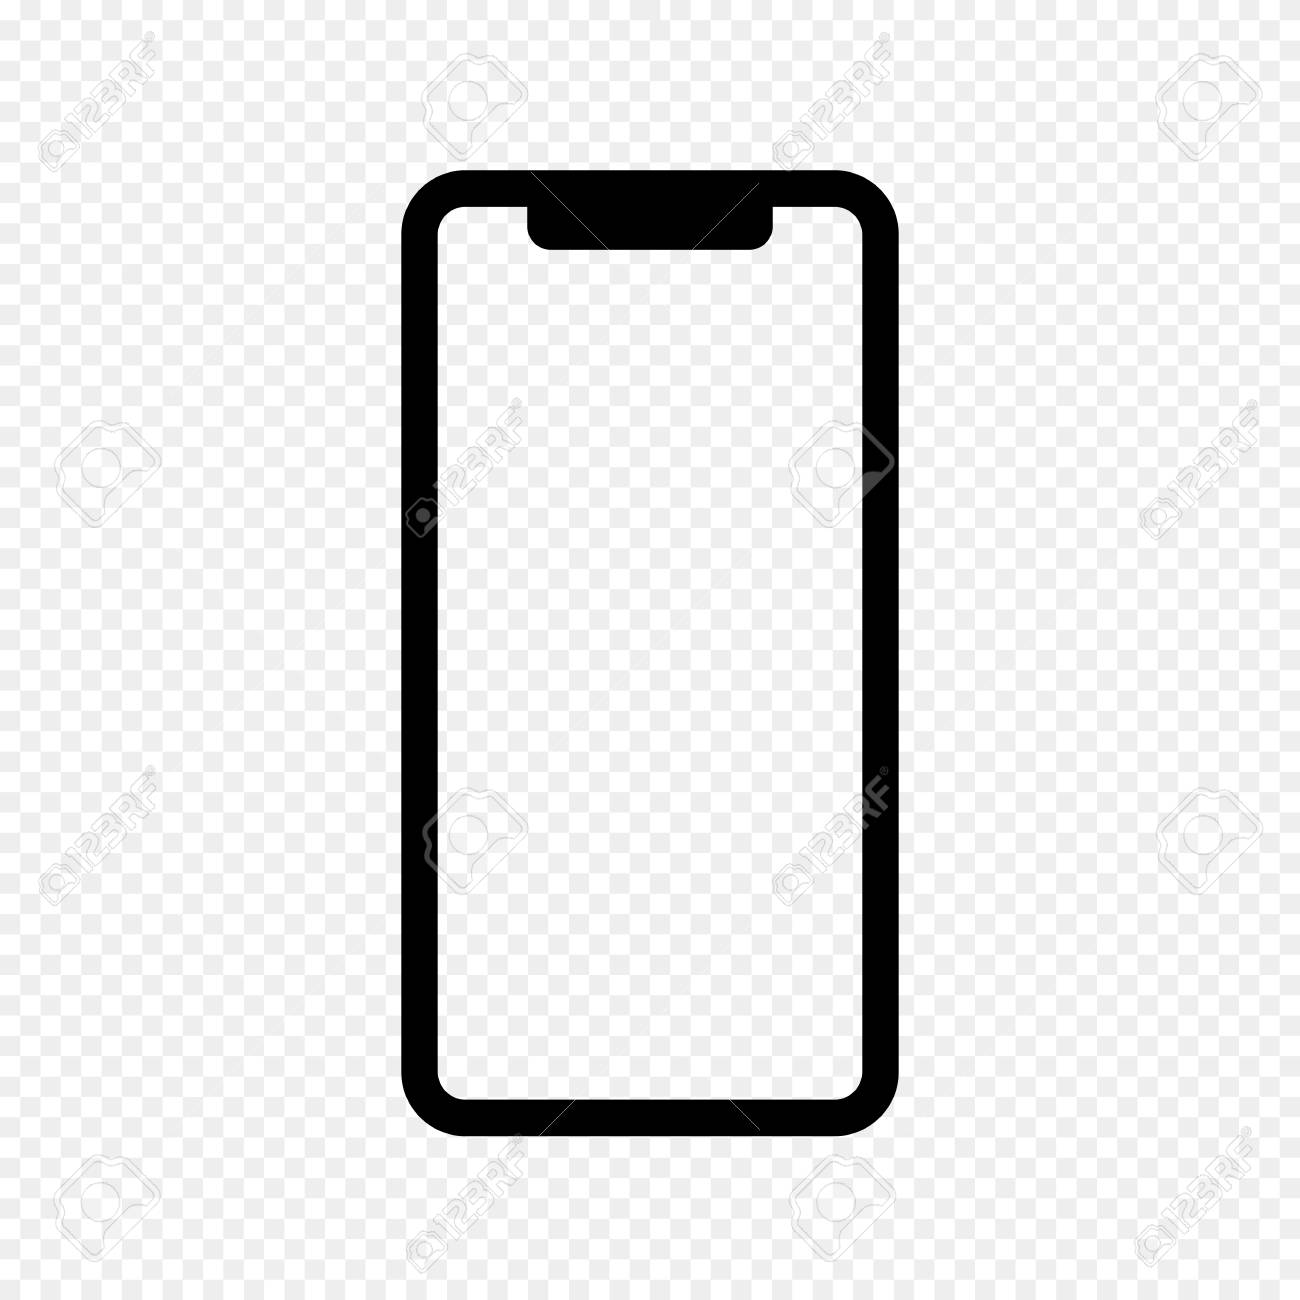 vector outline icon of phone isolated on transparent light